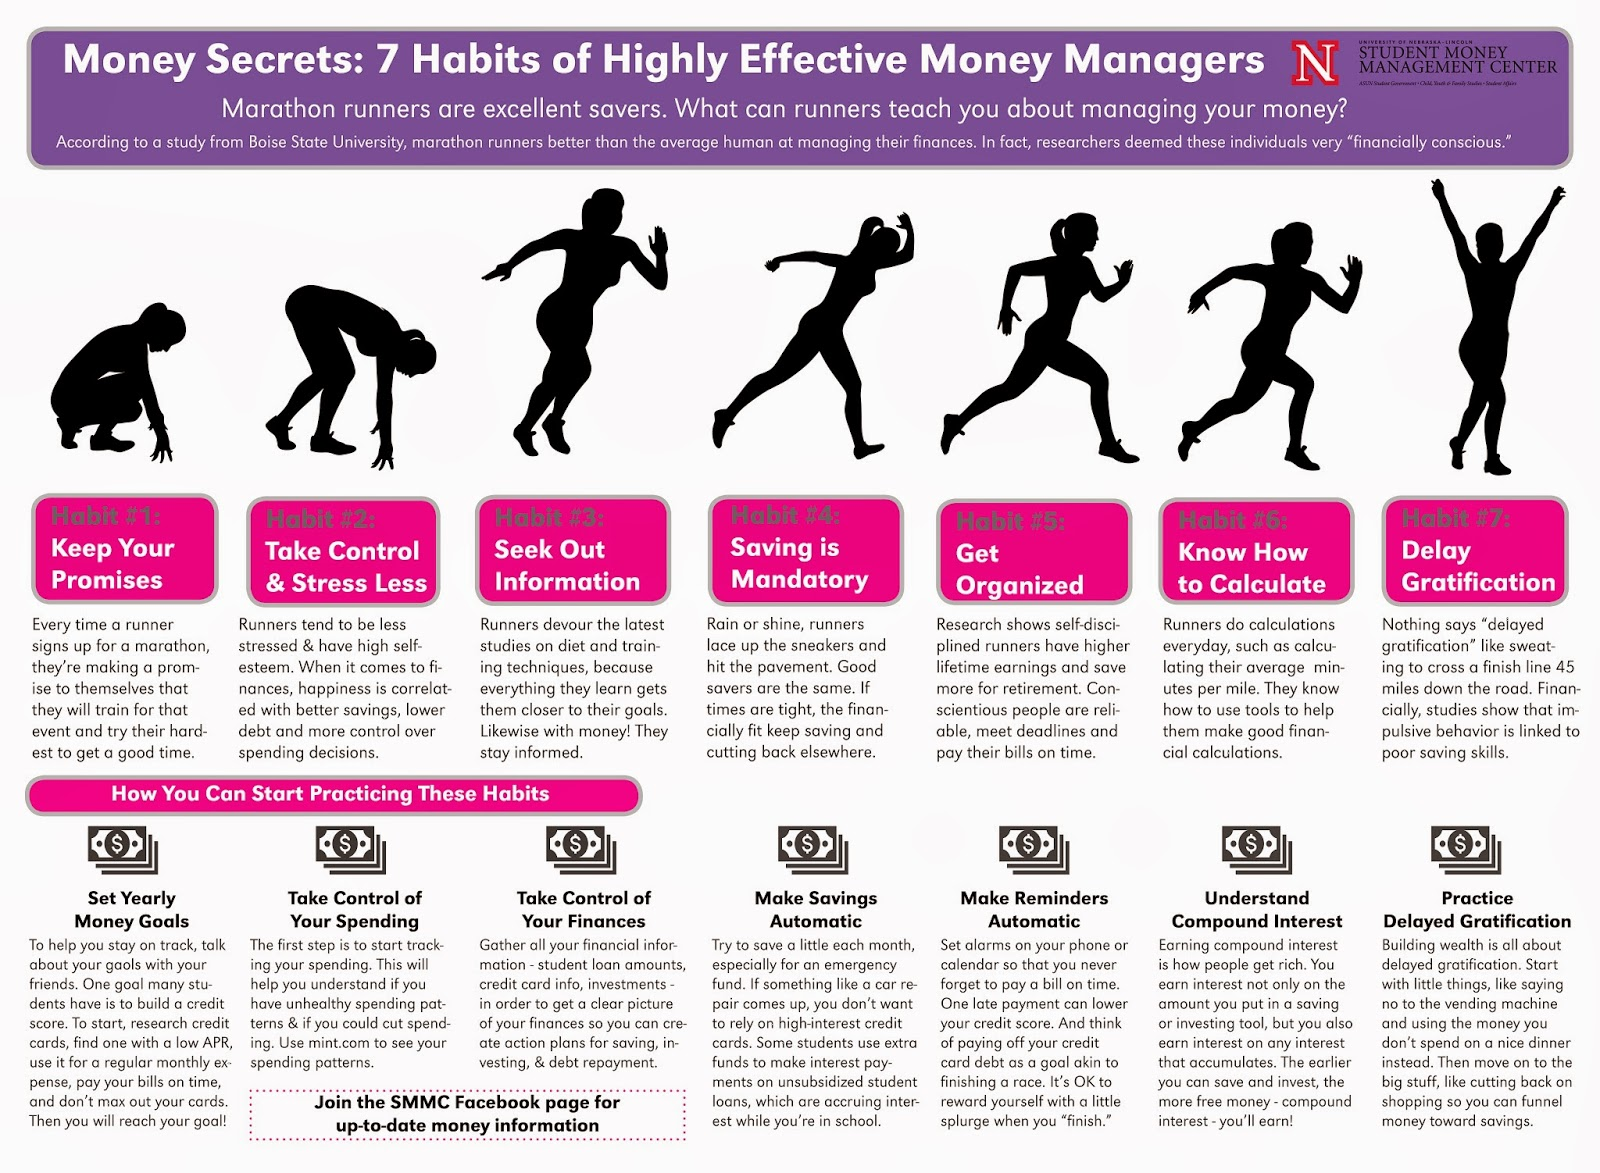 Unl Smmc Money Secrets Another Challenge Practice The 7 Habits Of Highly Effective Money Managers